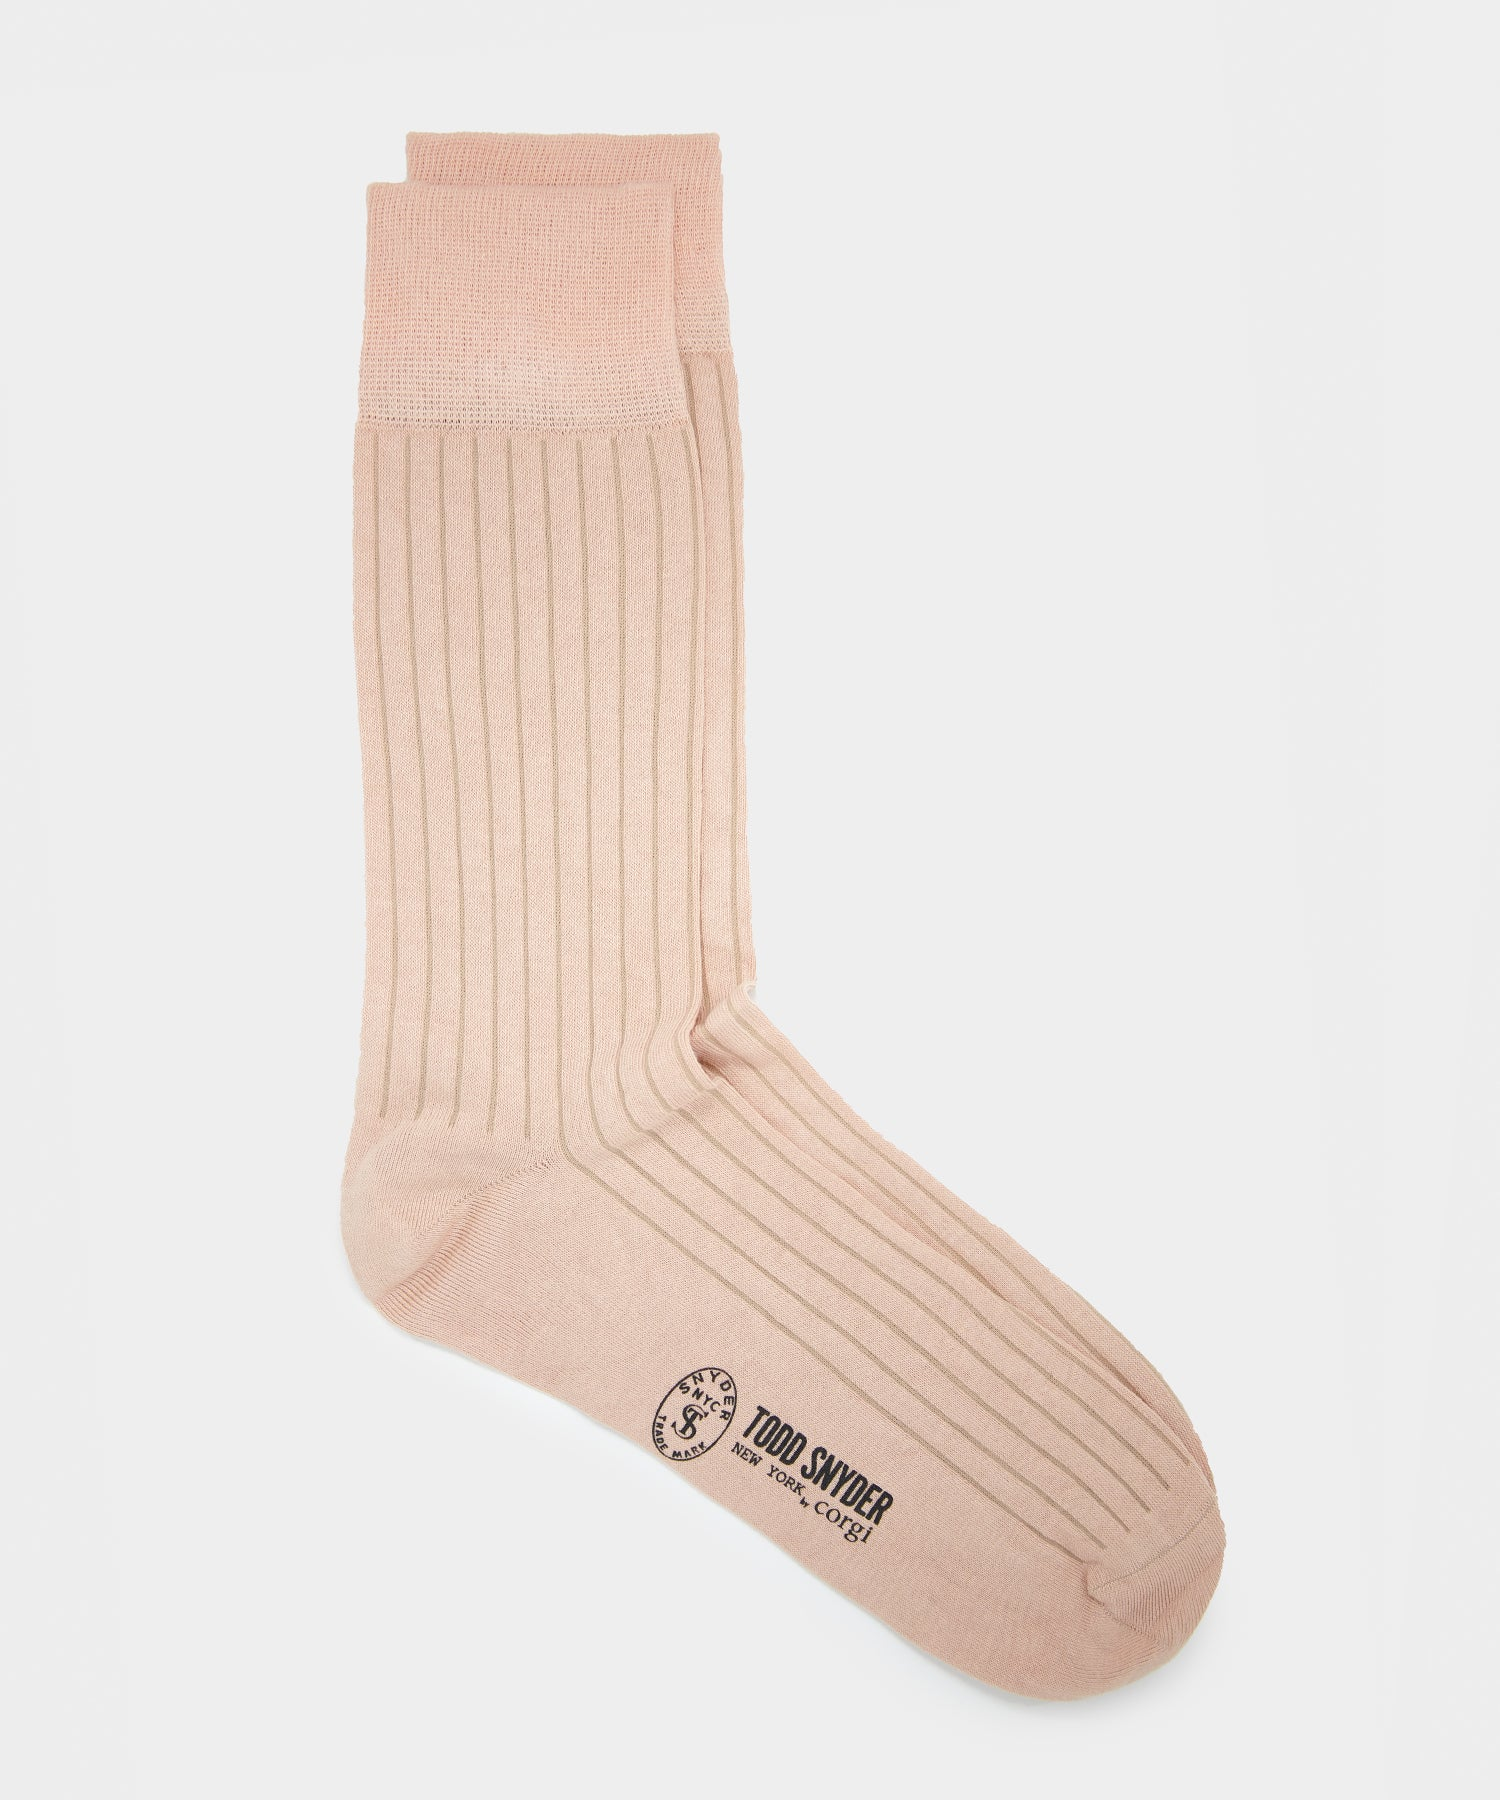 Corgi Plain Sock in Terracotta